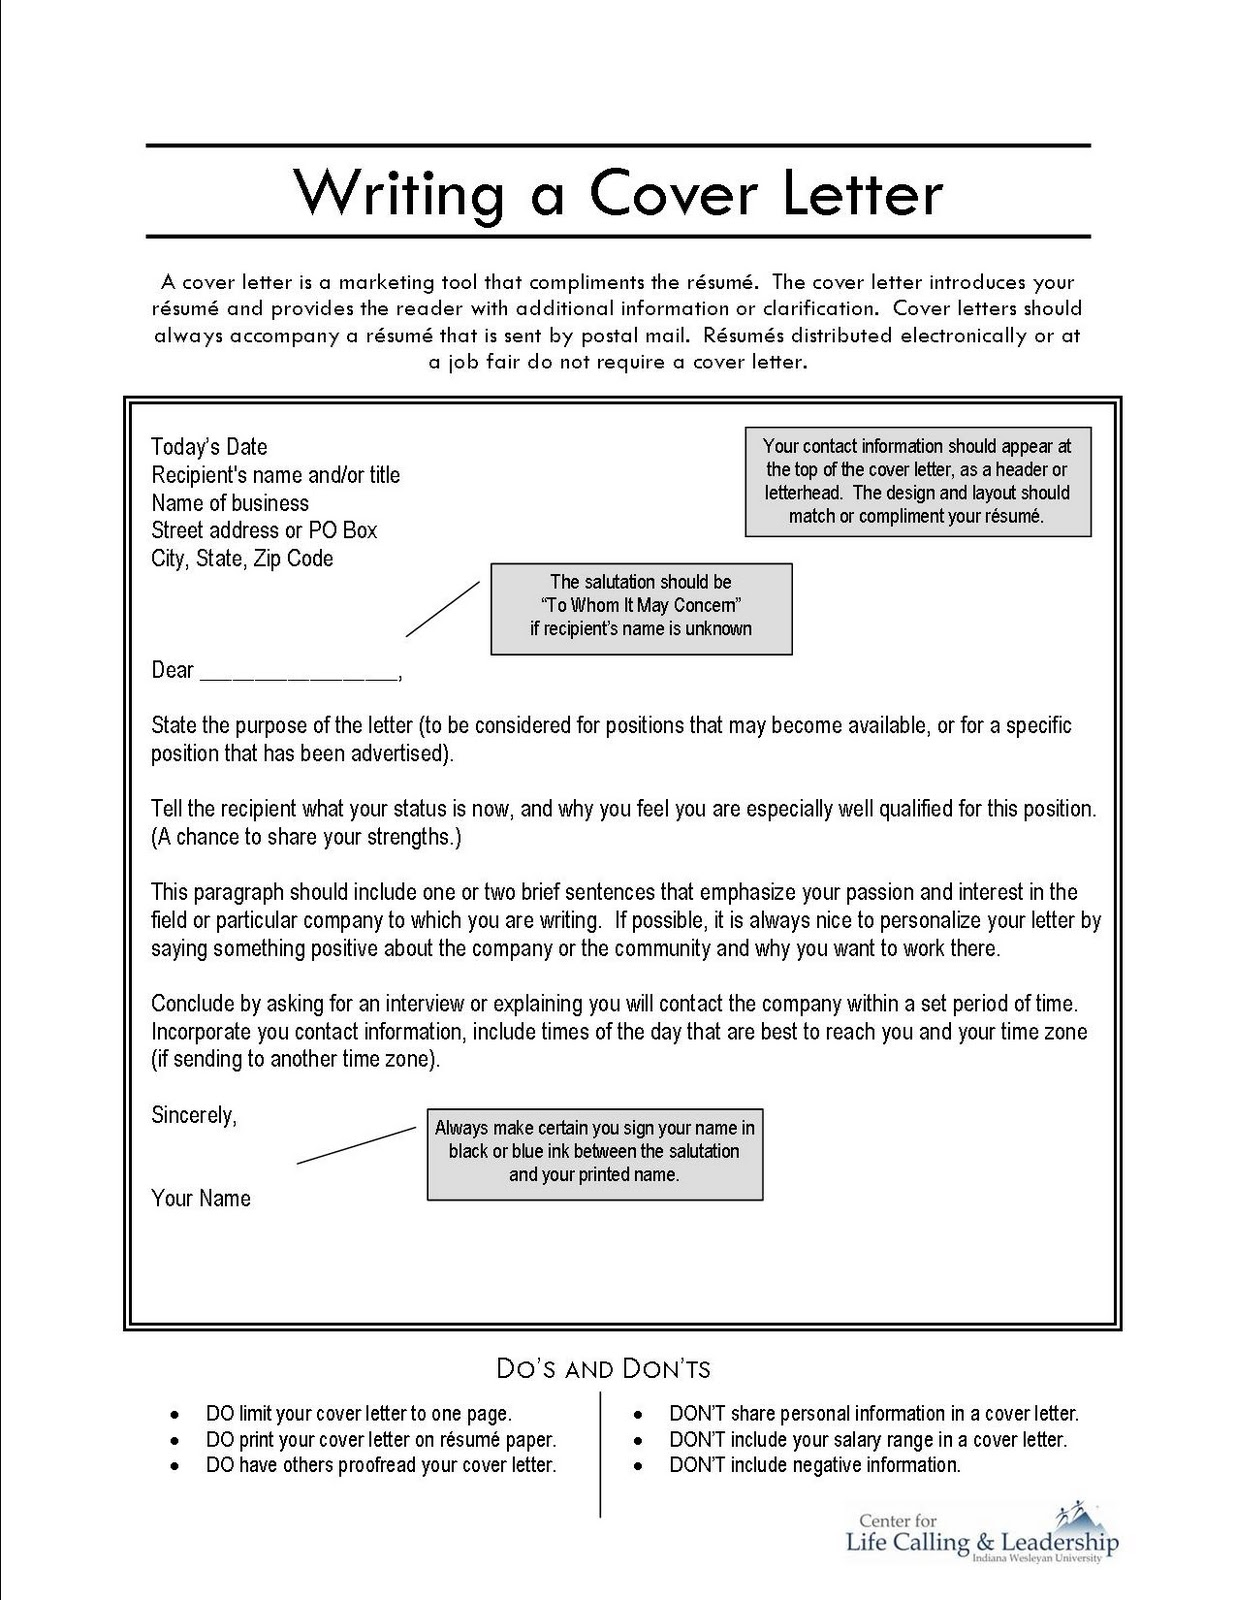 resume writers online english advanced level 2 aka na2 formal letter writing - How To Write A Cover Letter And Resume